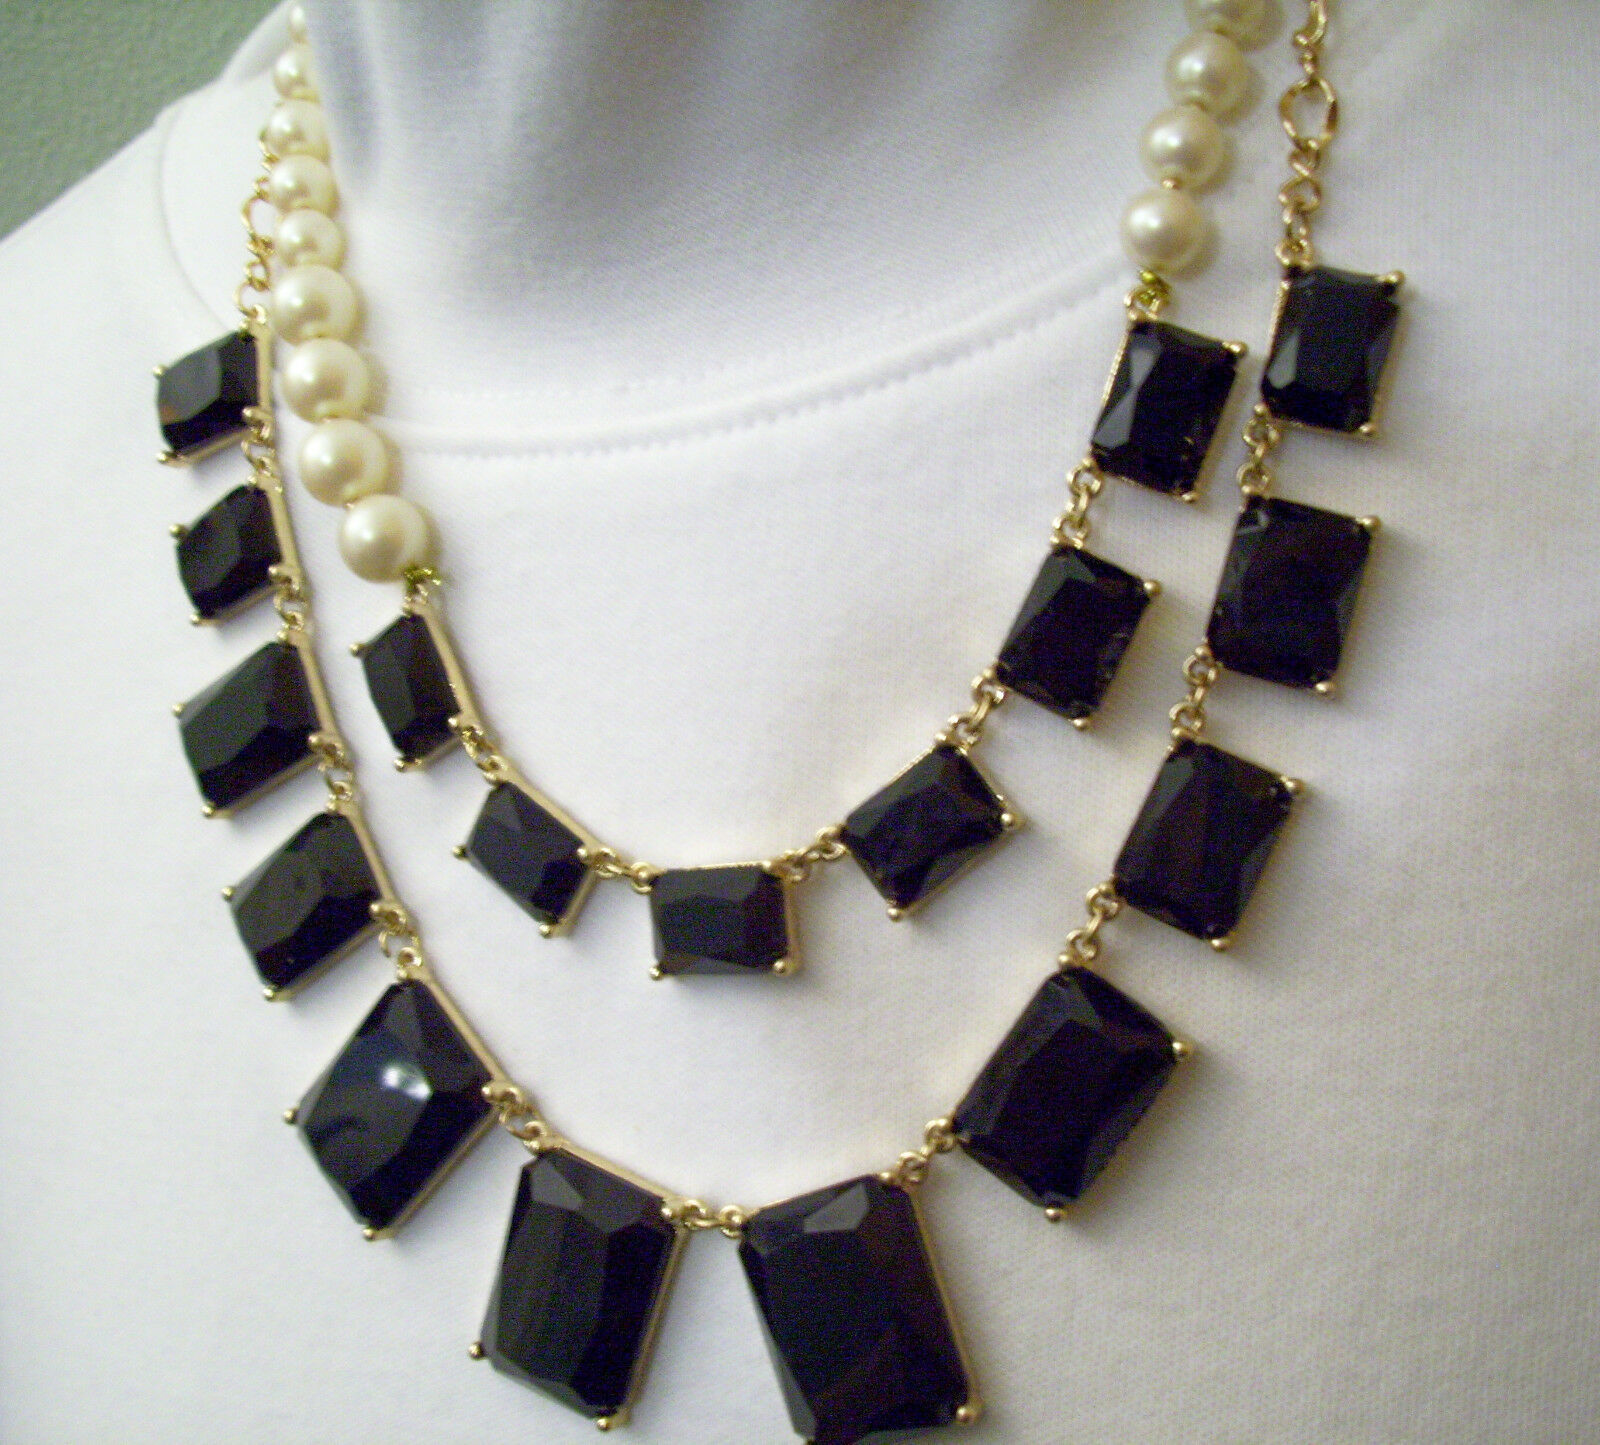 Pearls JET Black Rhinestone DRAMATIC 2 Strand Necklace Chain ASYMMETRICAL Estate image 2